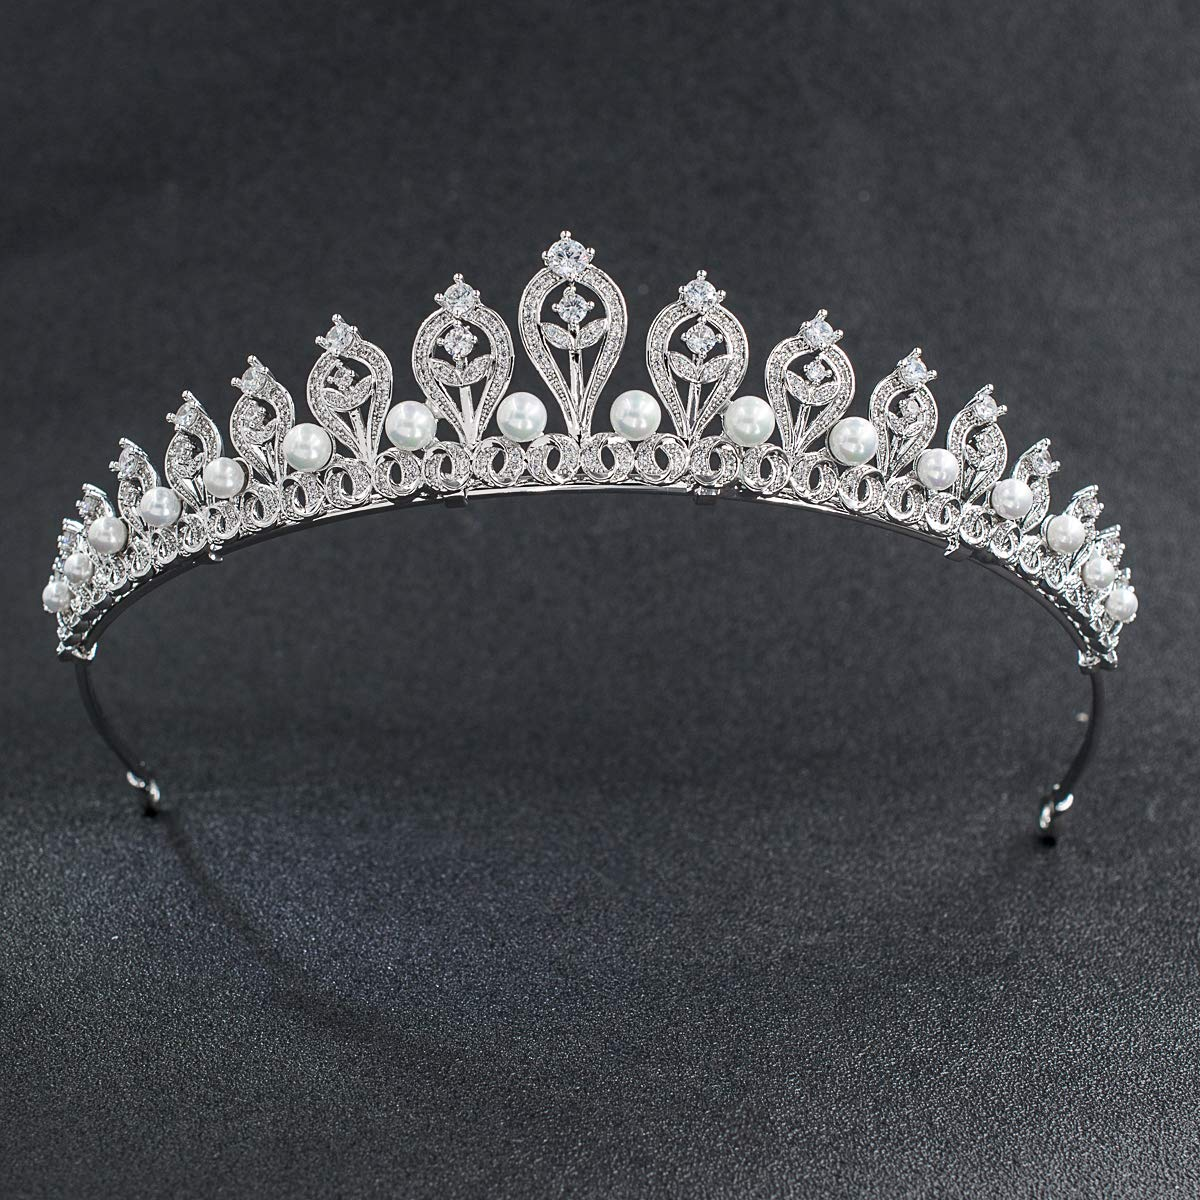 Crystals CZ Cubic Pearl Wedding Bridal Tiara Crown Women Hair Accessories Jewelry CH10109